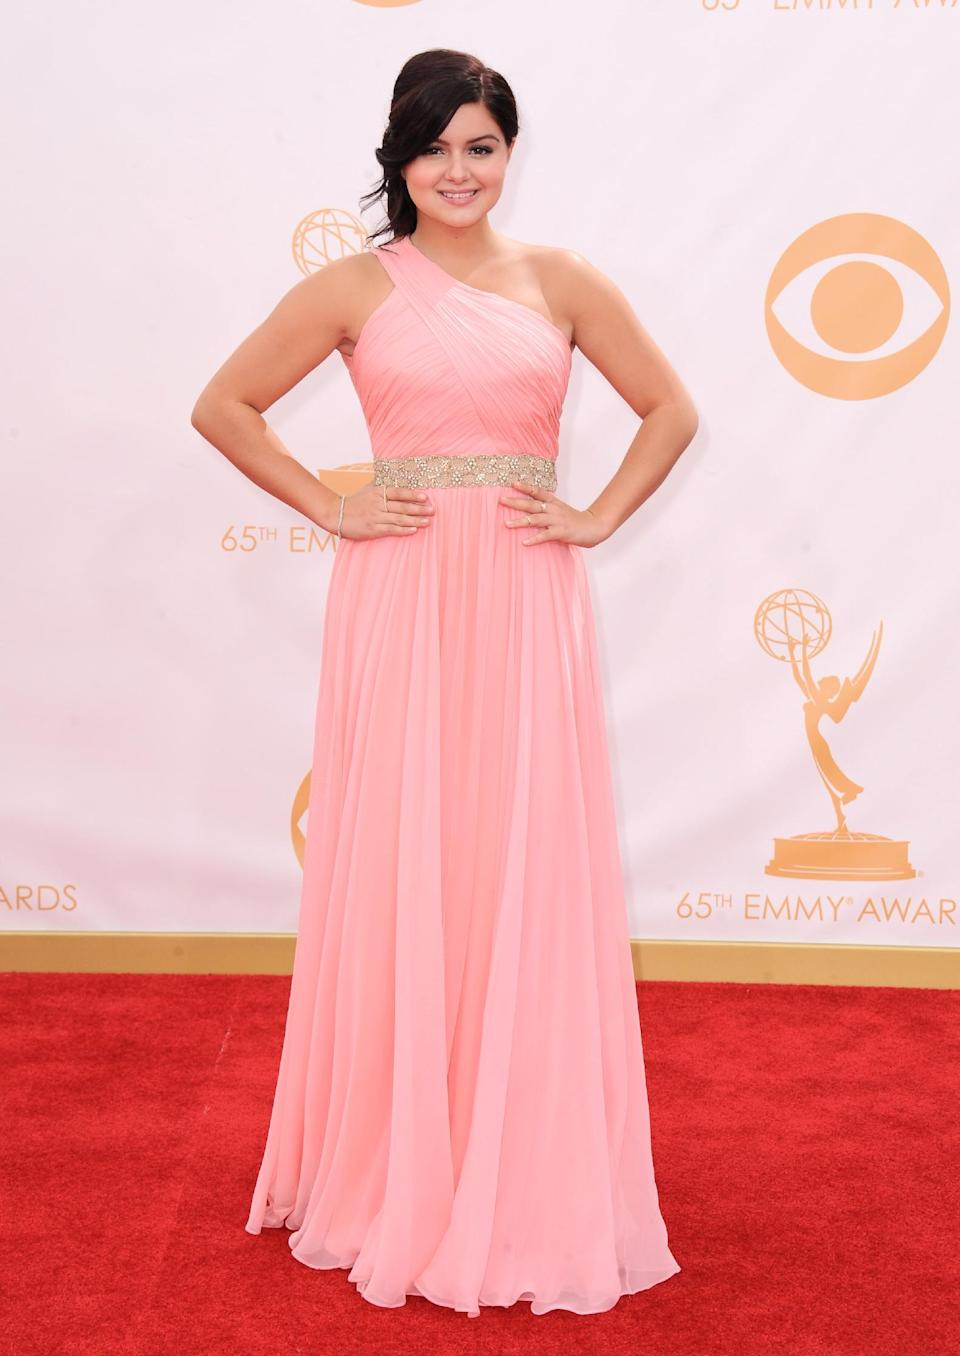 Ariel Winter arrives at the 65th Primetime Emmy Awards at Nokia Theatre on Sunday, Sept. 22, 2013, in Los Angeles. (Photo by Jordan Strauss/Invision/AP)